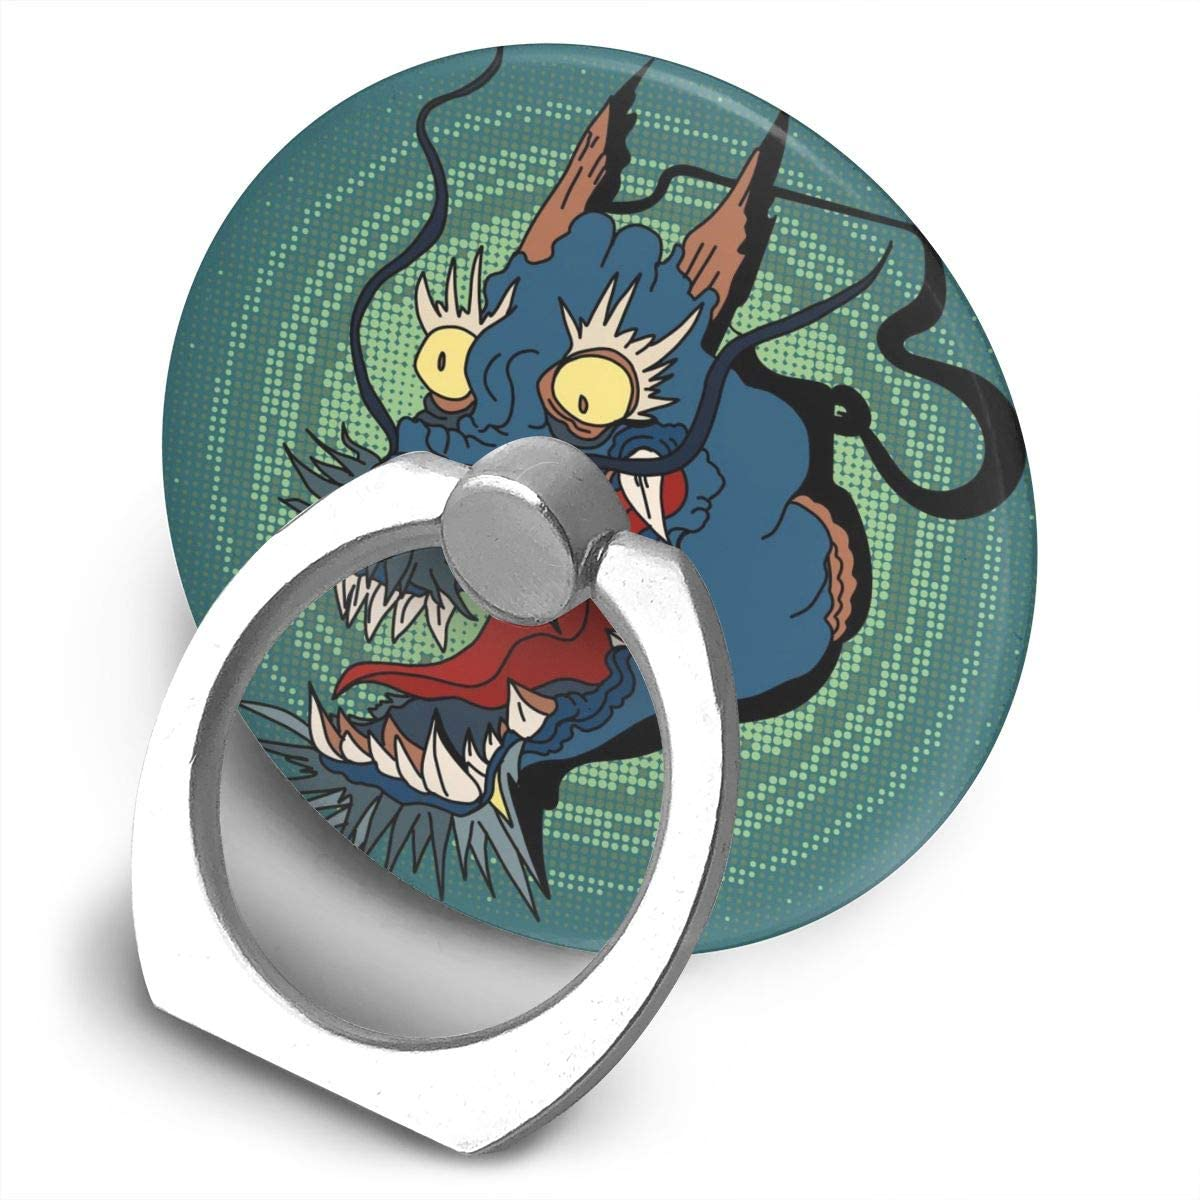 Universal Phone Ring Holder Vintage Chinese Dragon Retro Adjustable 360°Rotation Round Finger Grip Loop Cell Phone Stand for Phone X/6/6s/7/8/8/10/11 Plus Smartphone Android